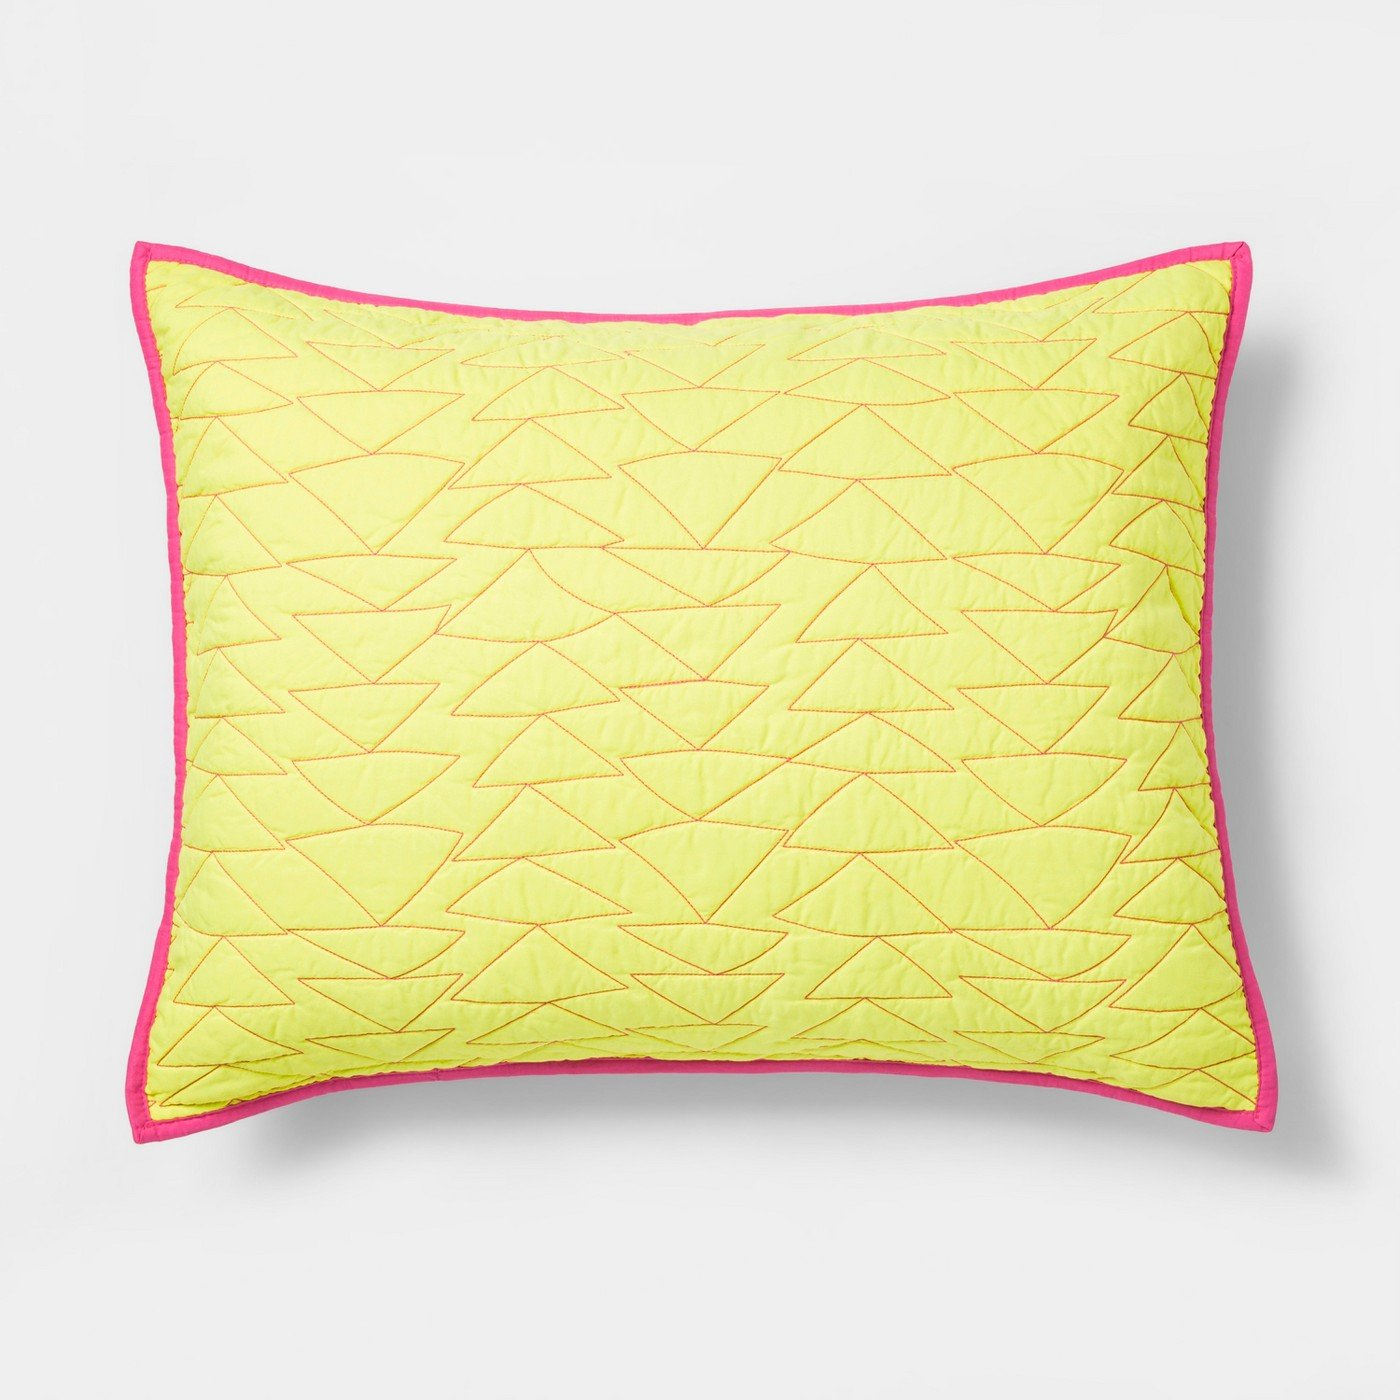 Pillowfort Triangle Stitch Quilted Pillow Sham (Standard) - Yellow, Pink